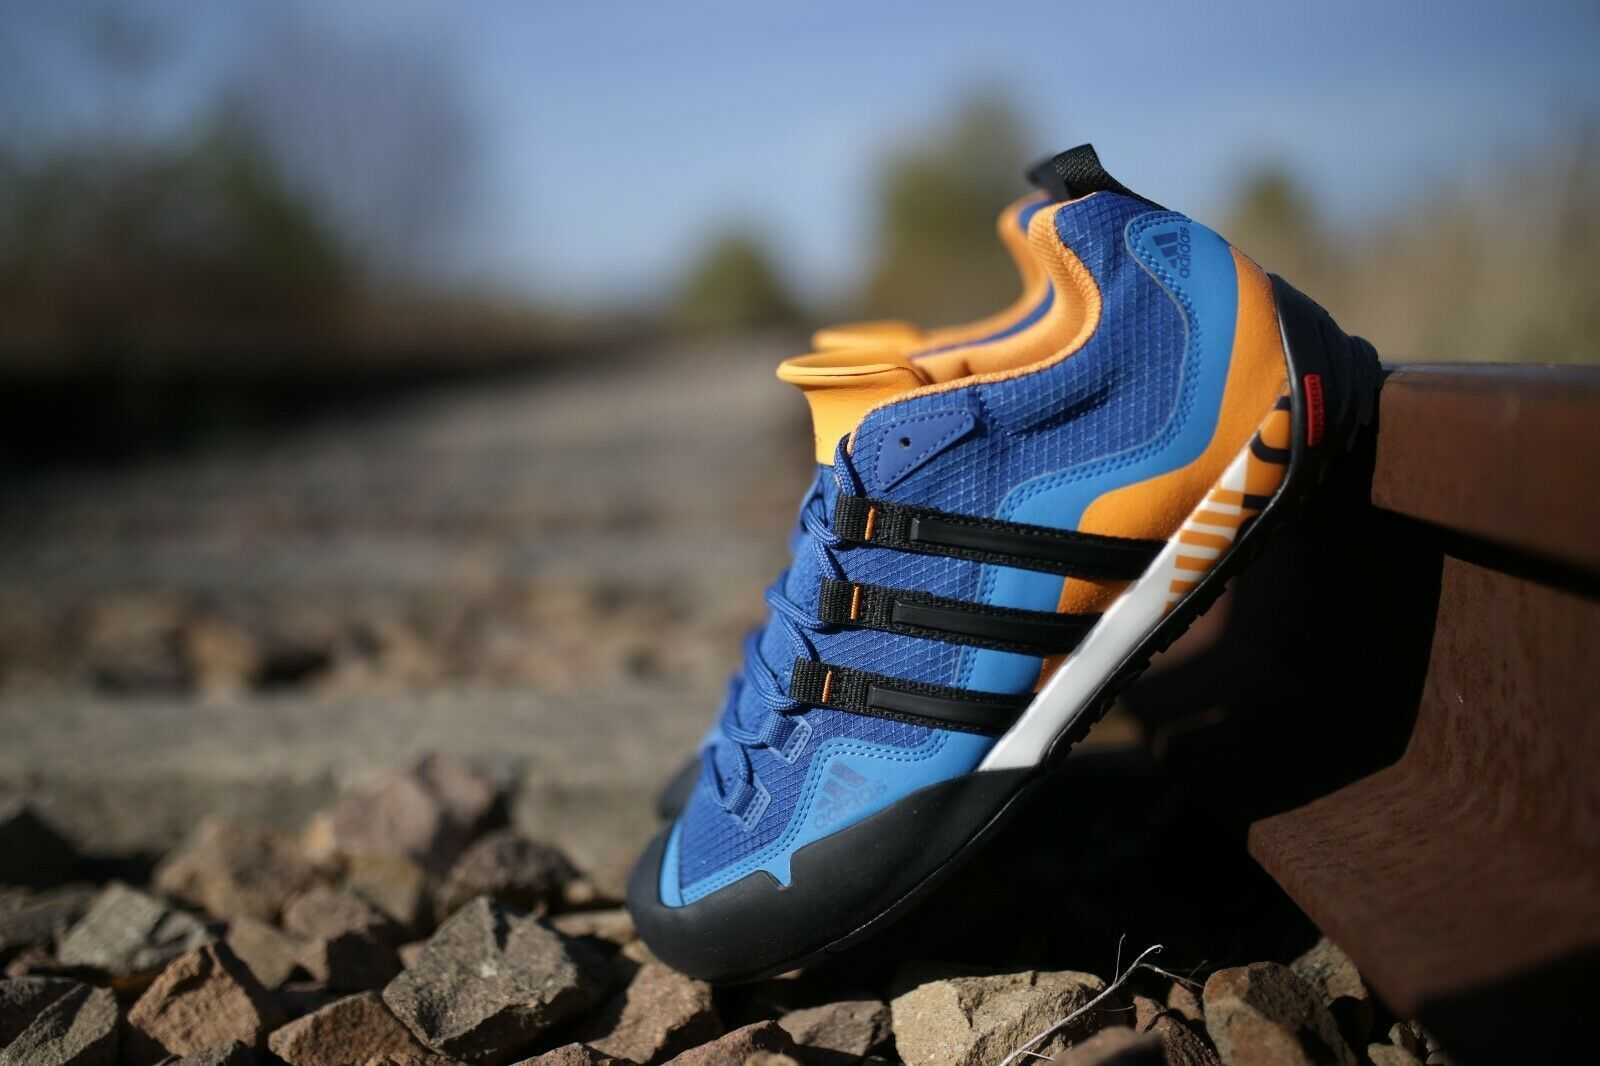 Adidas Shoes 80 Off Adidas Terrex Swift Solo Aq5296 Blue Mens Shoes Sneakers Trekking New 201 In 2020 Adidas Outfit Shoes Shoes Sneakers Adidas Adidas Shoes Outlet